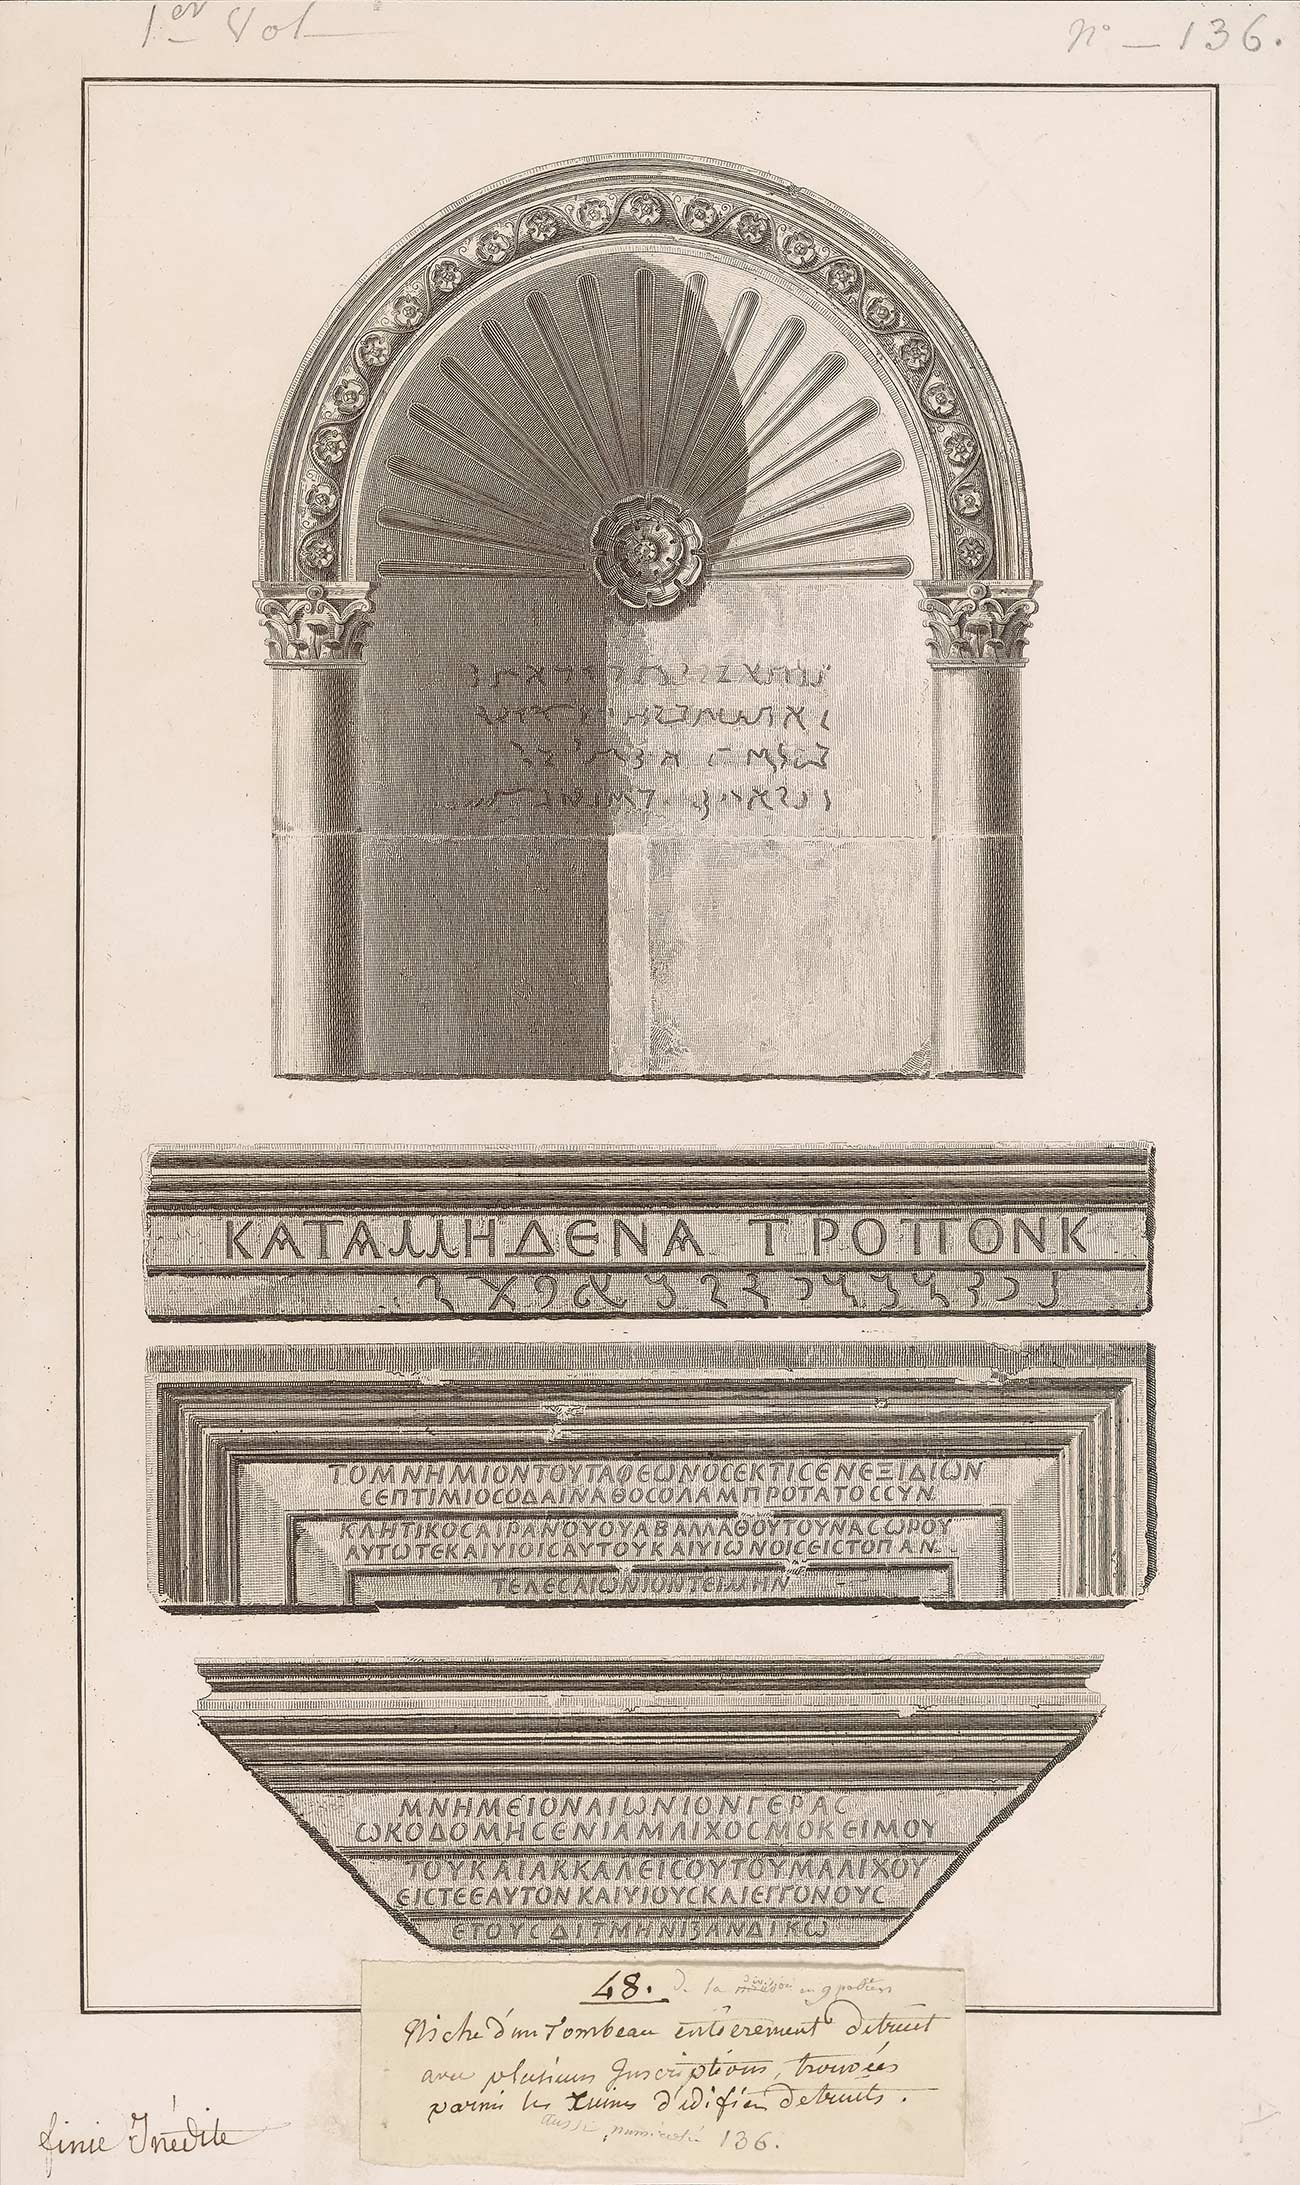 Etching of funerary monuments showing chiseled inscriptions in Greek and Palmyrene Aramaic